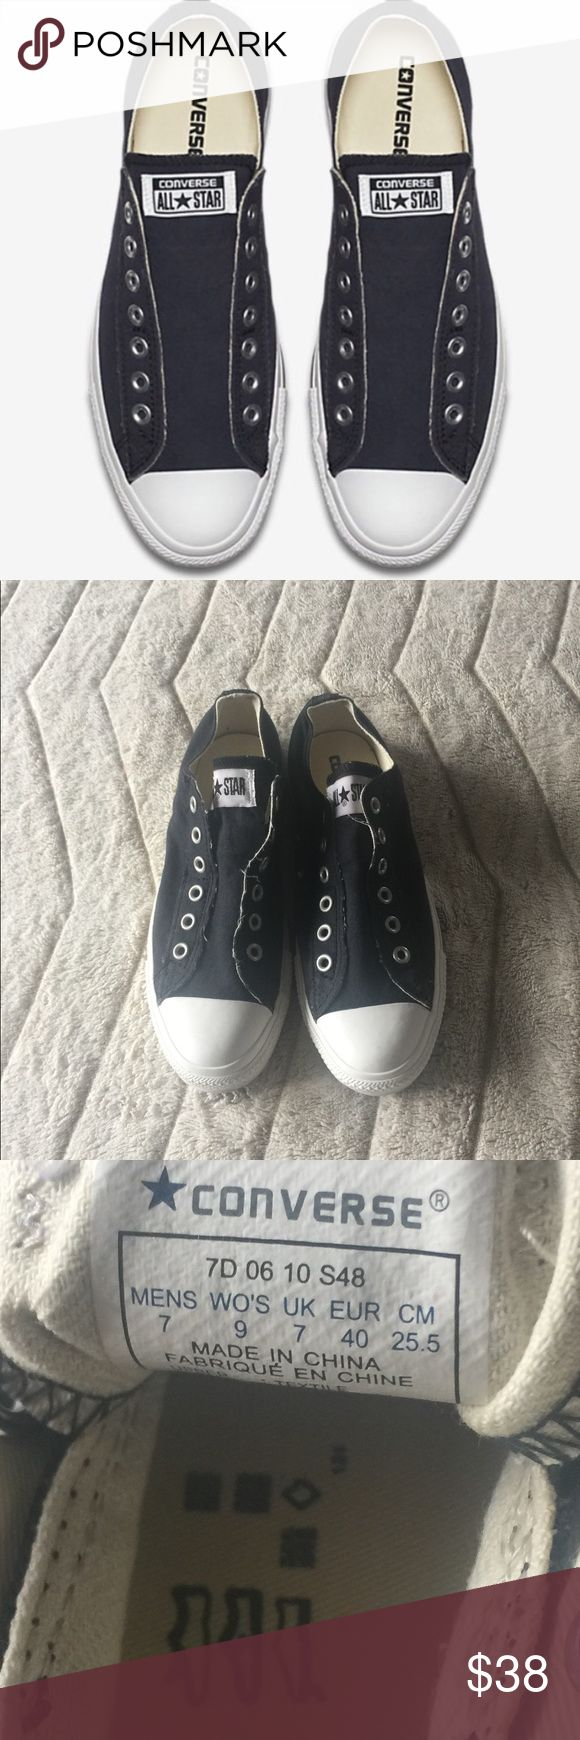 Converse Slip On Navy Low Top Women's size 9. Men's size 7.  Preowned but worn ONCE. Didn't realize these shoes ran large. They are in EXCELLENT BRAND NEW CONDITION! See pics! Elastic tongue slip on and super comfy. Retails $55. *These run half size large. Converse Shoes Sneakers